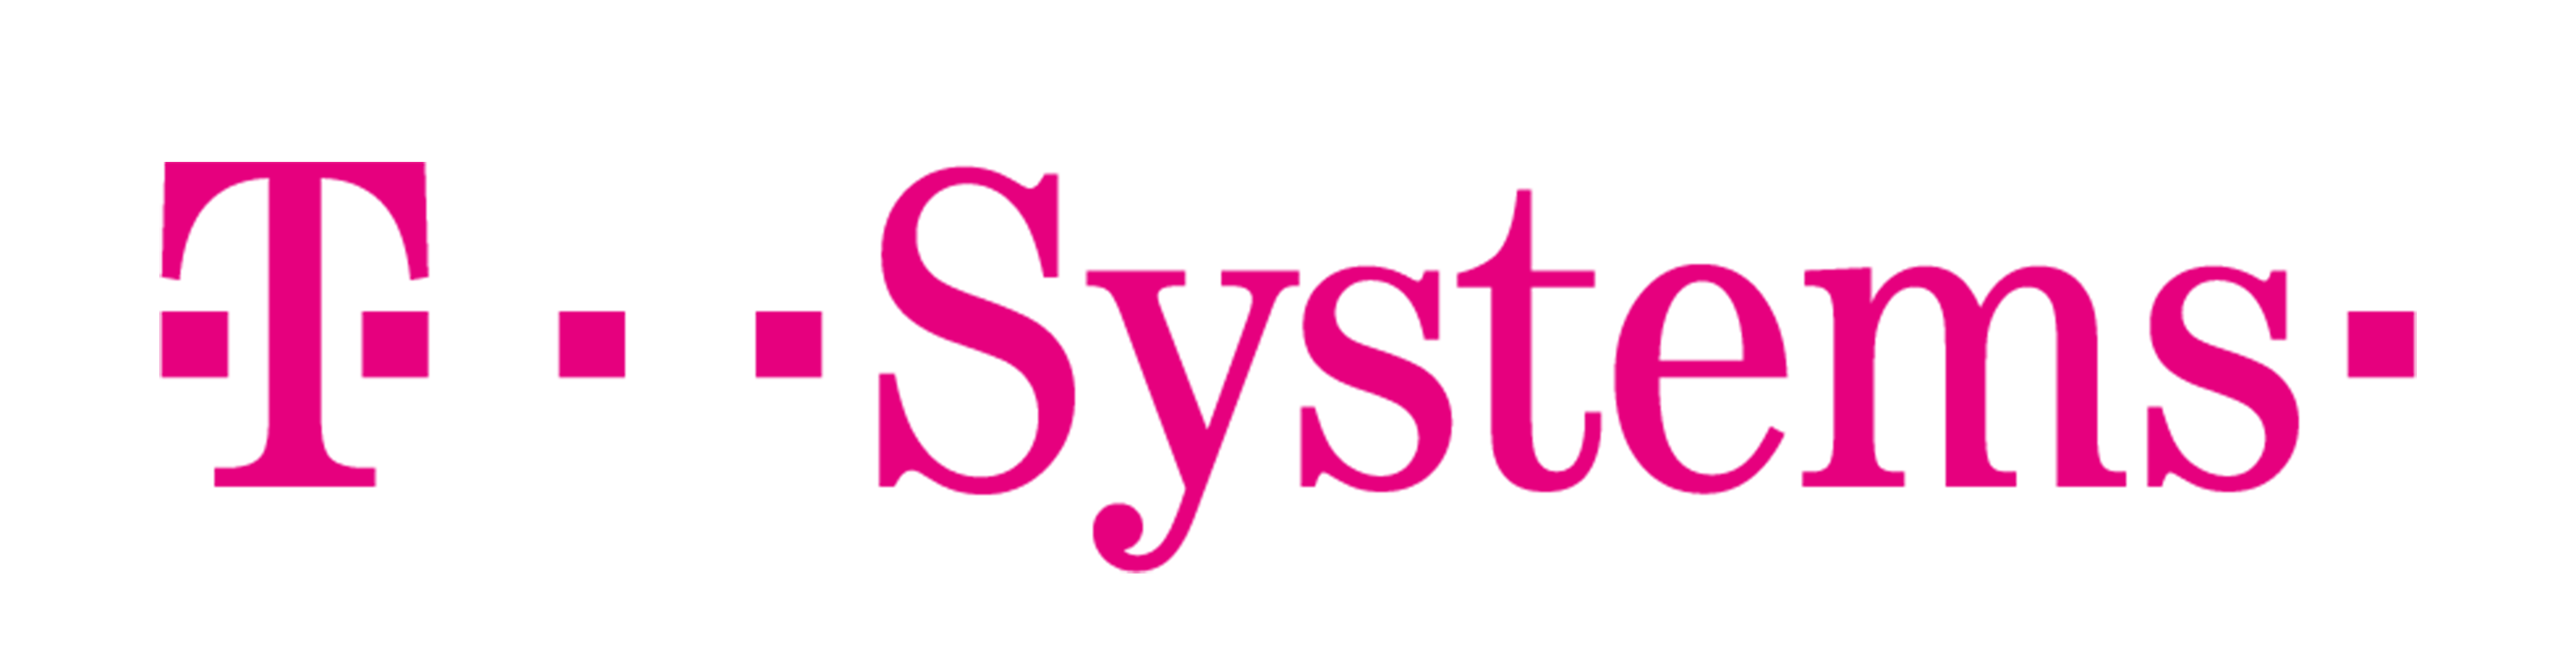 t-systems_logo